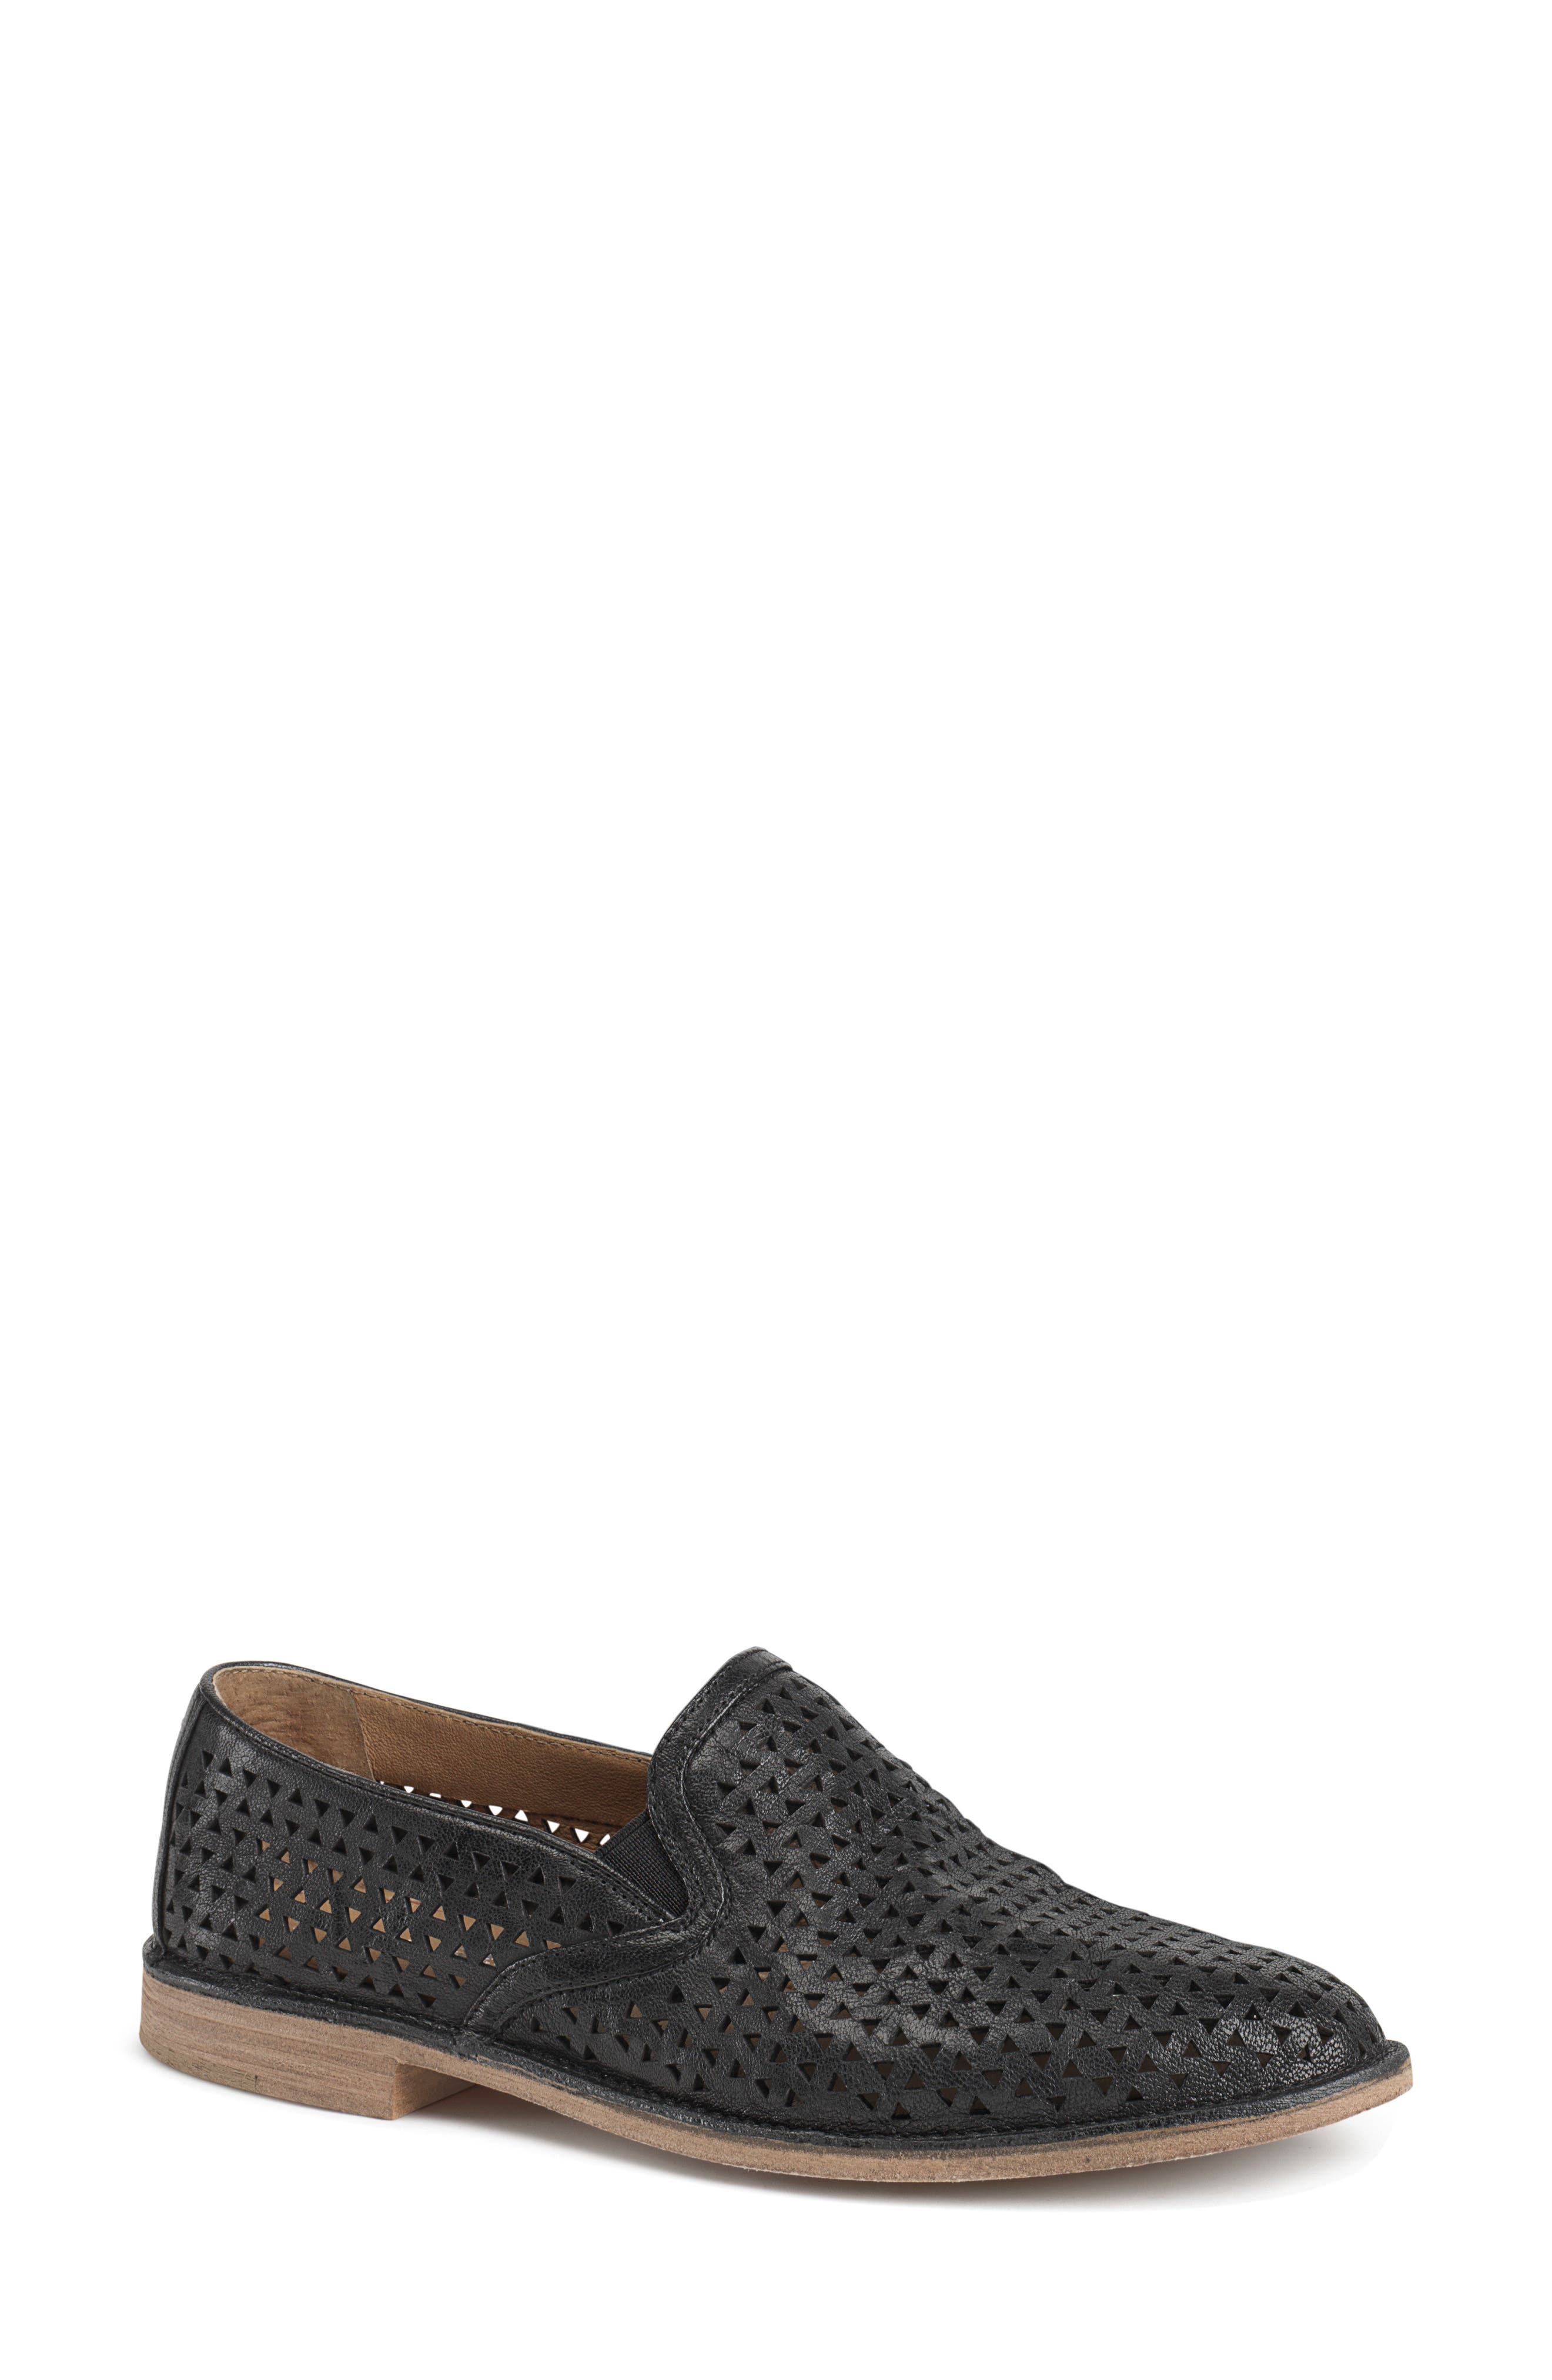 'Ali' Perforated Loafer,                             Main thumbnail 1, color,                             Black Leather